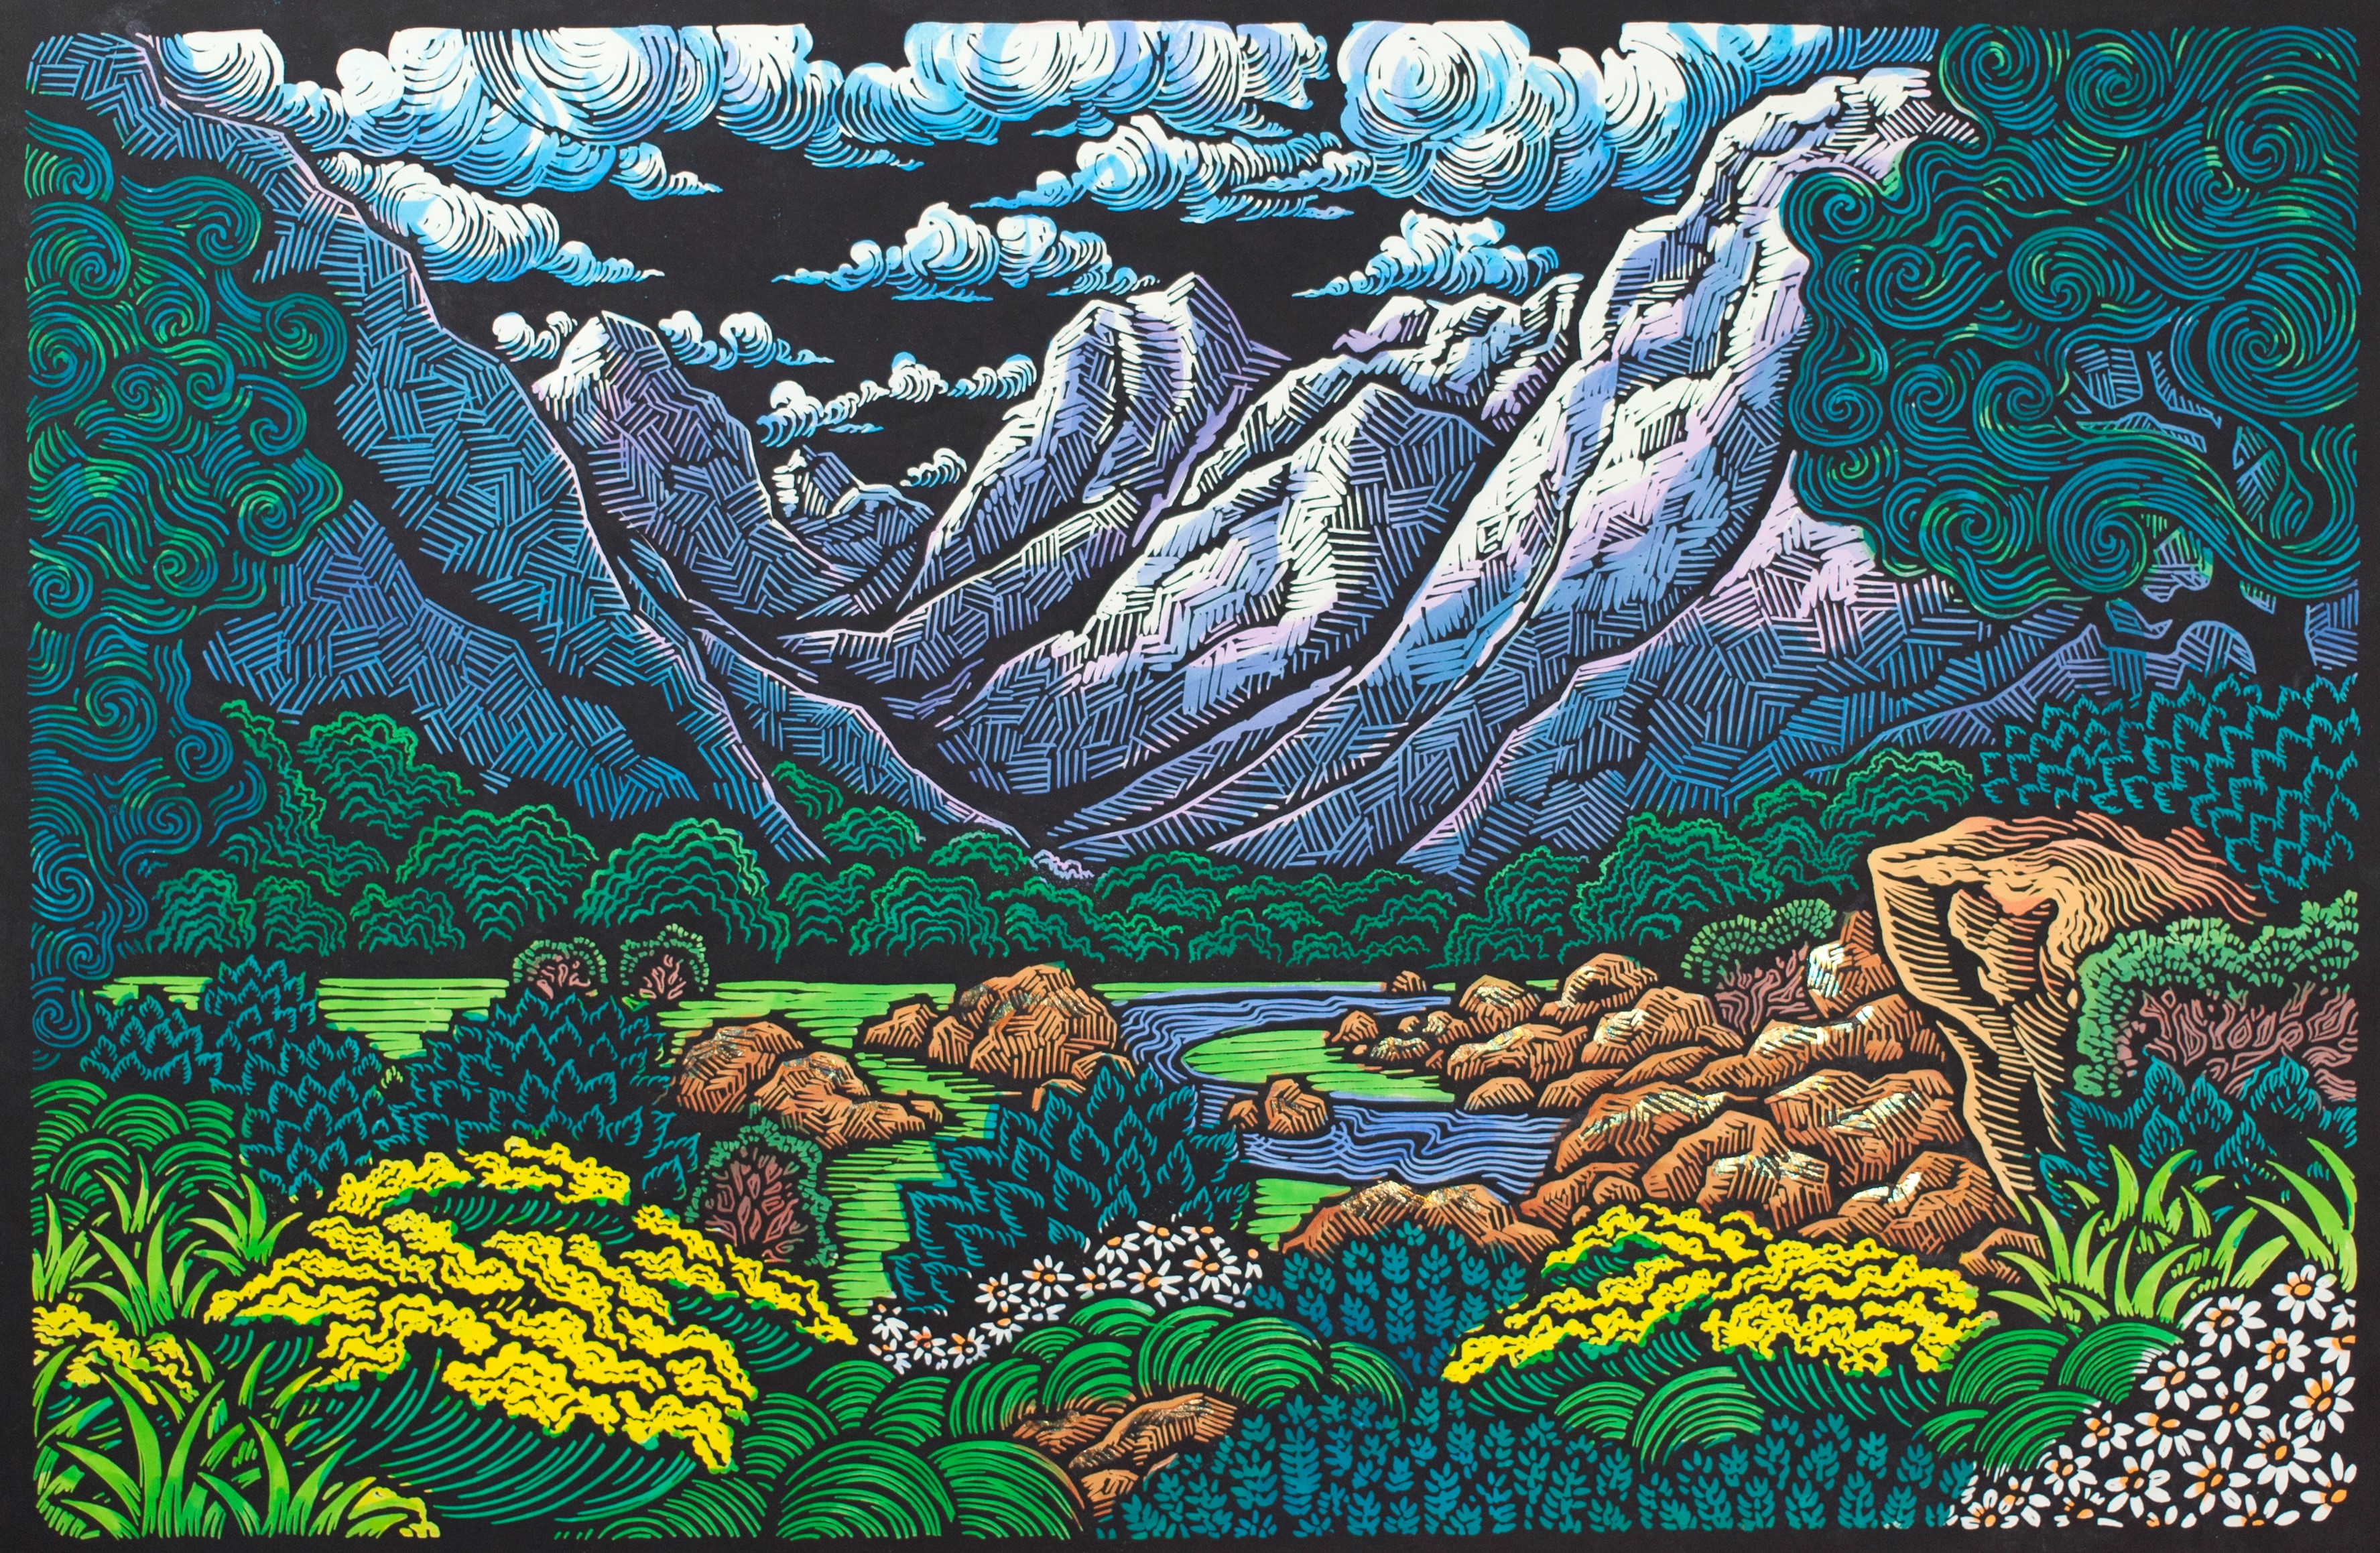 """The Journey Home"" - 24"" x 36"" - Linoleum block print with water color on handmade Kozo paper"